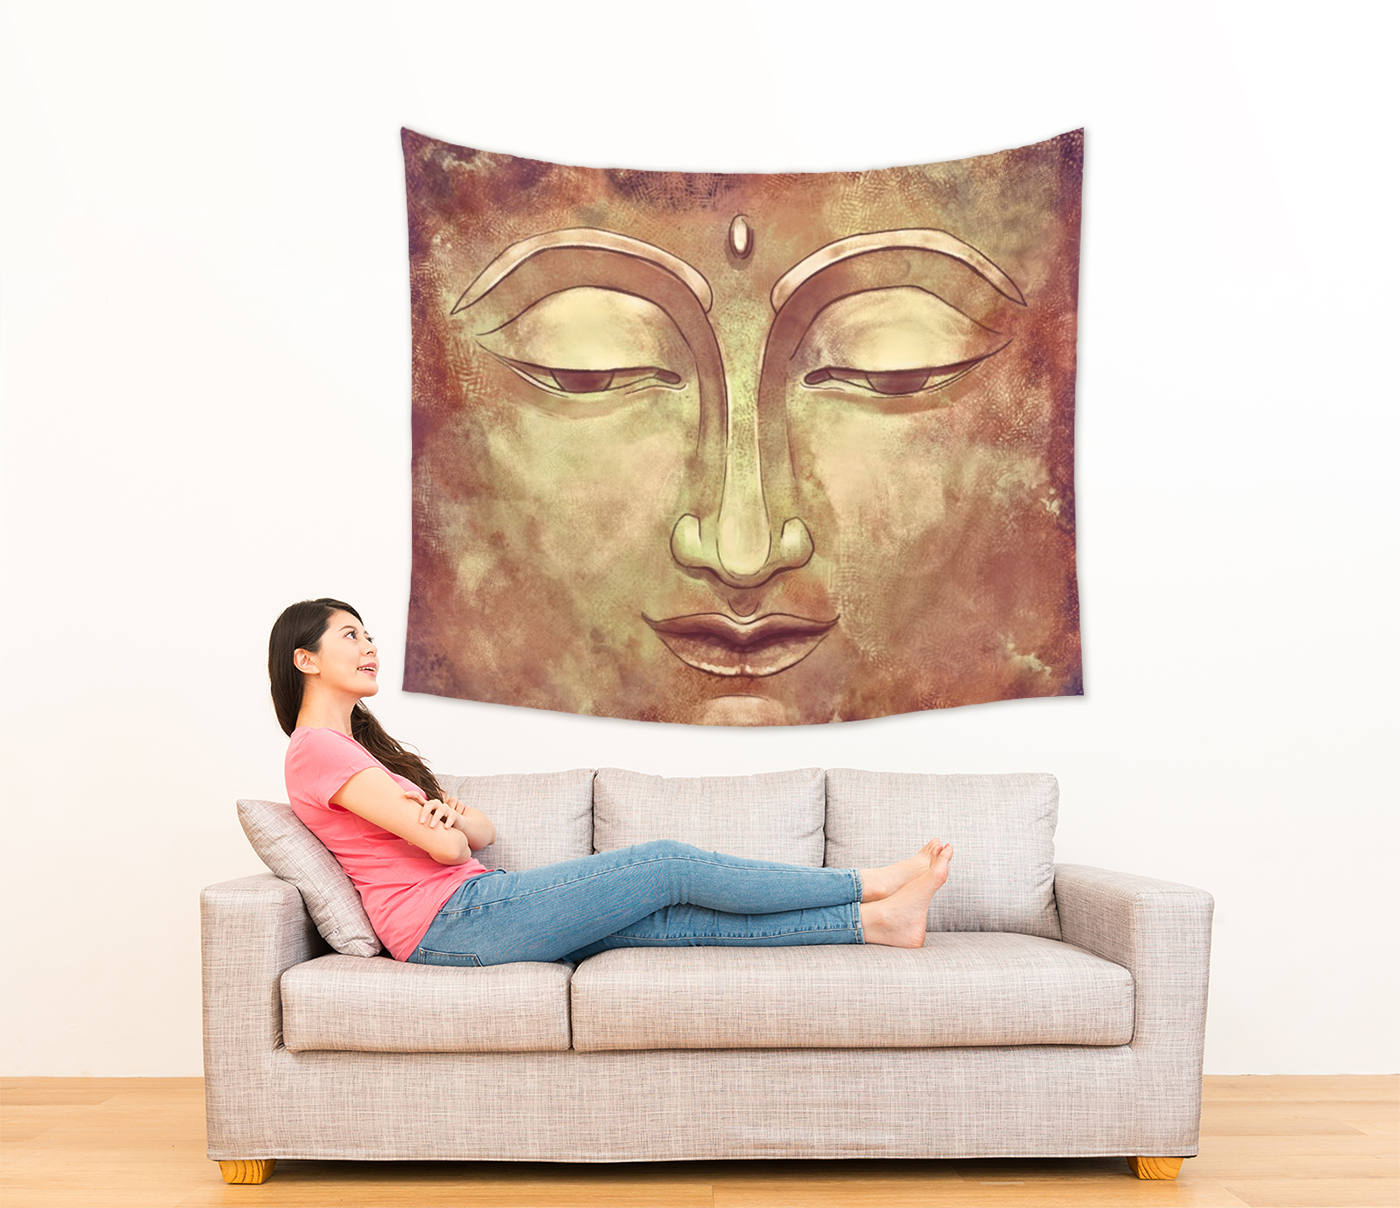 Golden Buddha Tapestry Wall Hanging for Living Room, Calming Wall Art | Brandless Artist